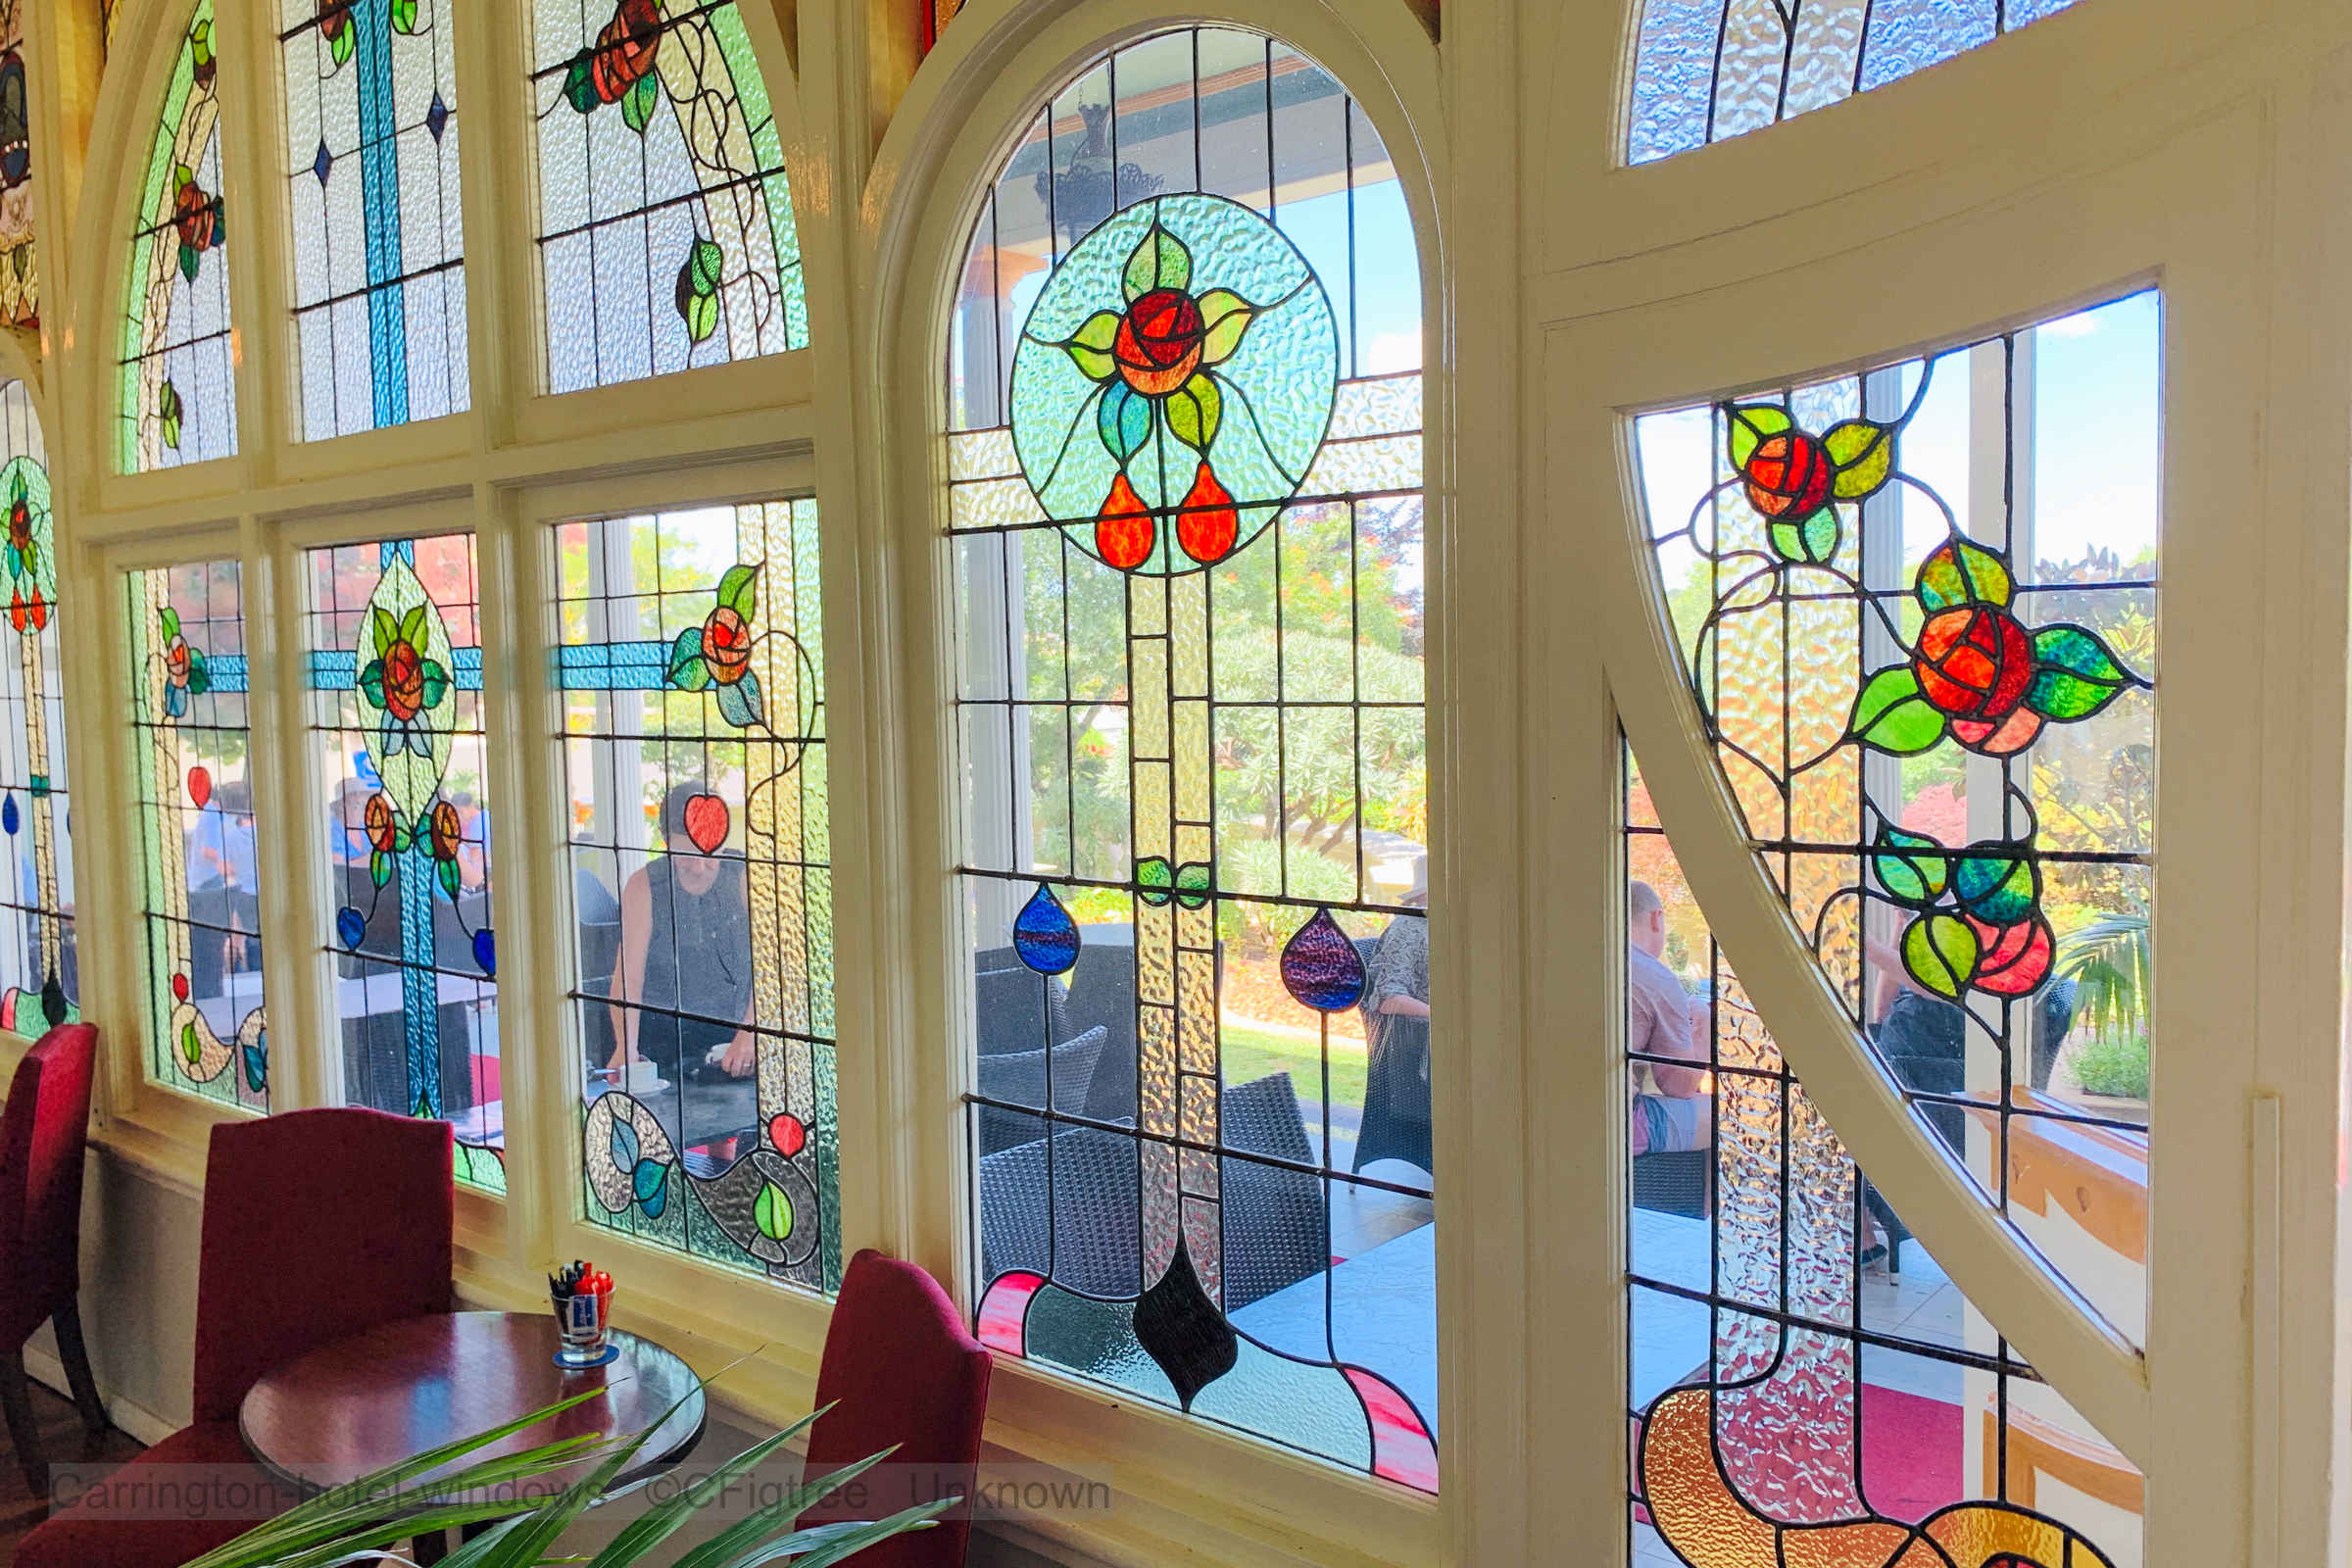 Stain glass windows at the Carrington Hotel, the Blue Mountains, Katoomba